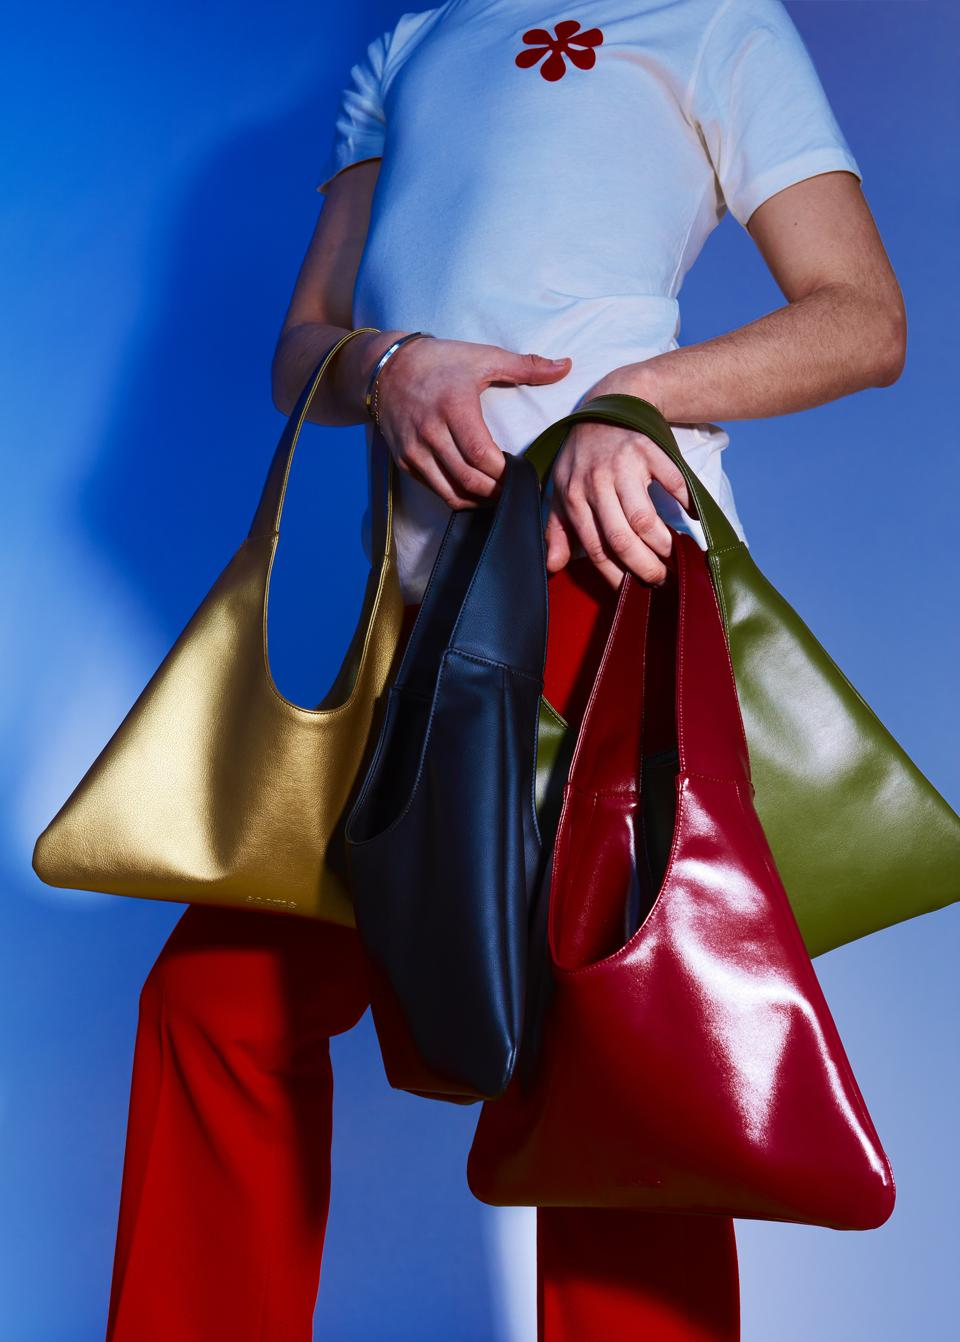 Agave Triangular Tote in various colors by Santos by Monica. Photo by Andrés Jaña.